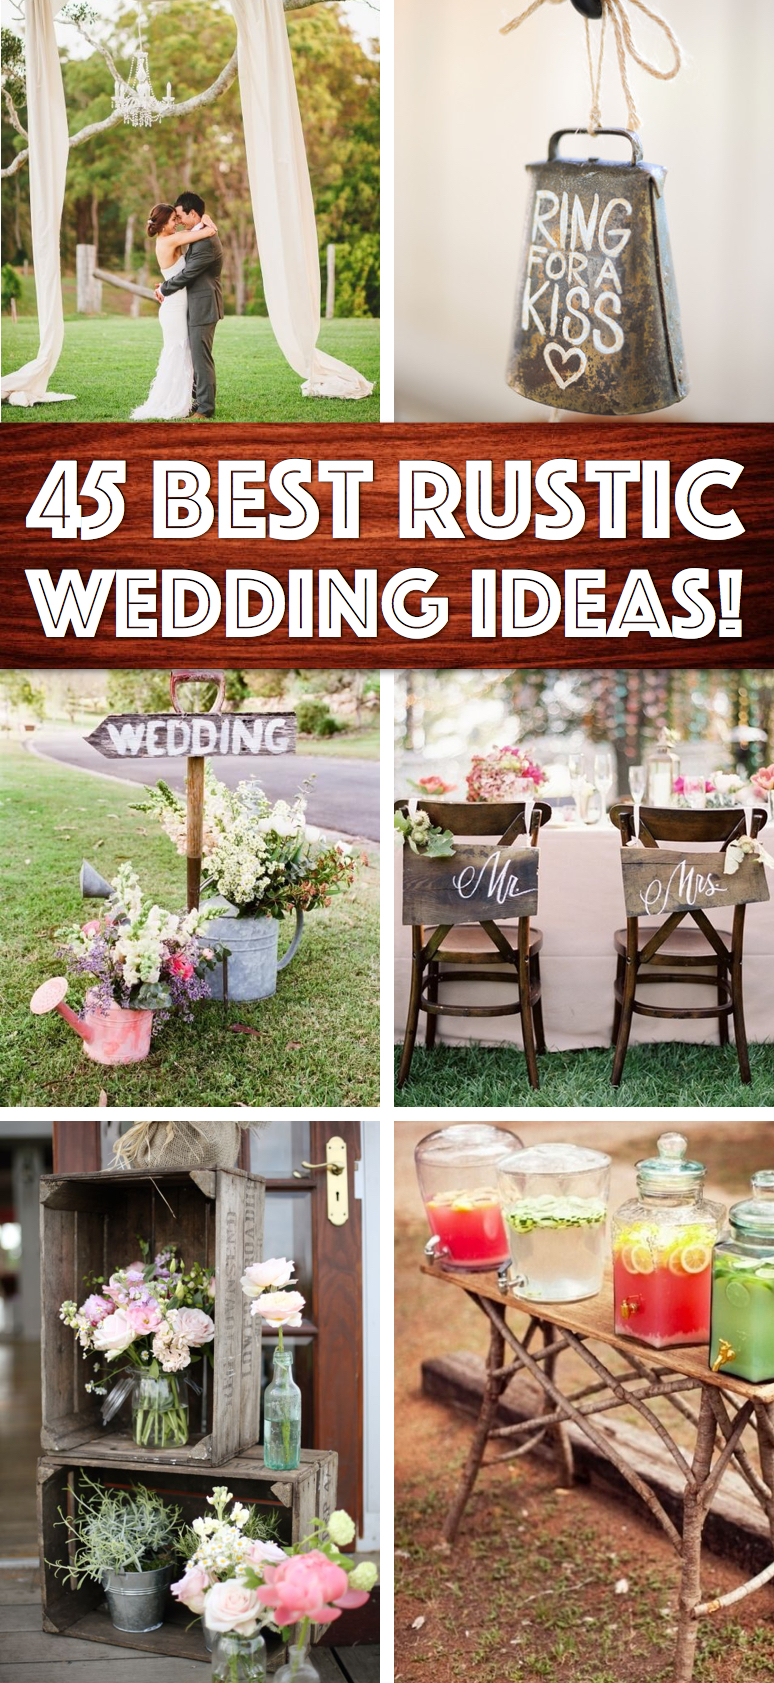 rustic wedding decorations for sale wedding centerpieces for sale rustic wedding decorations adelaide